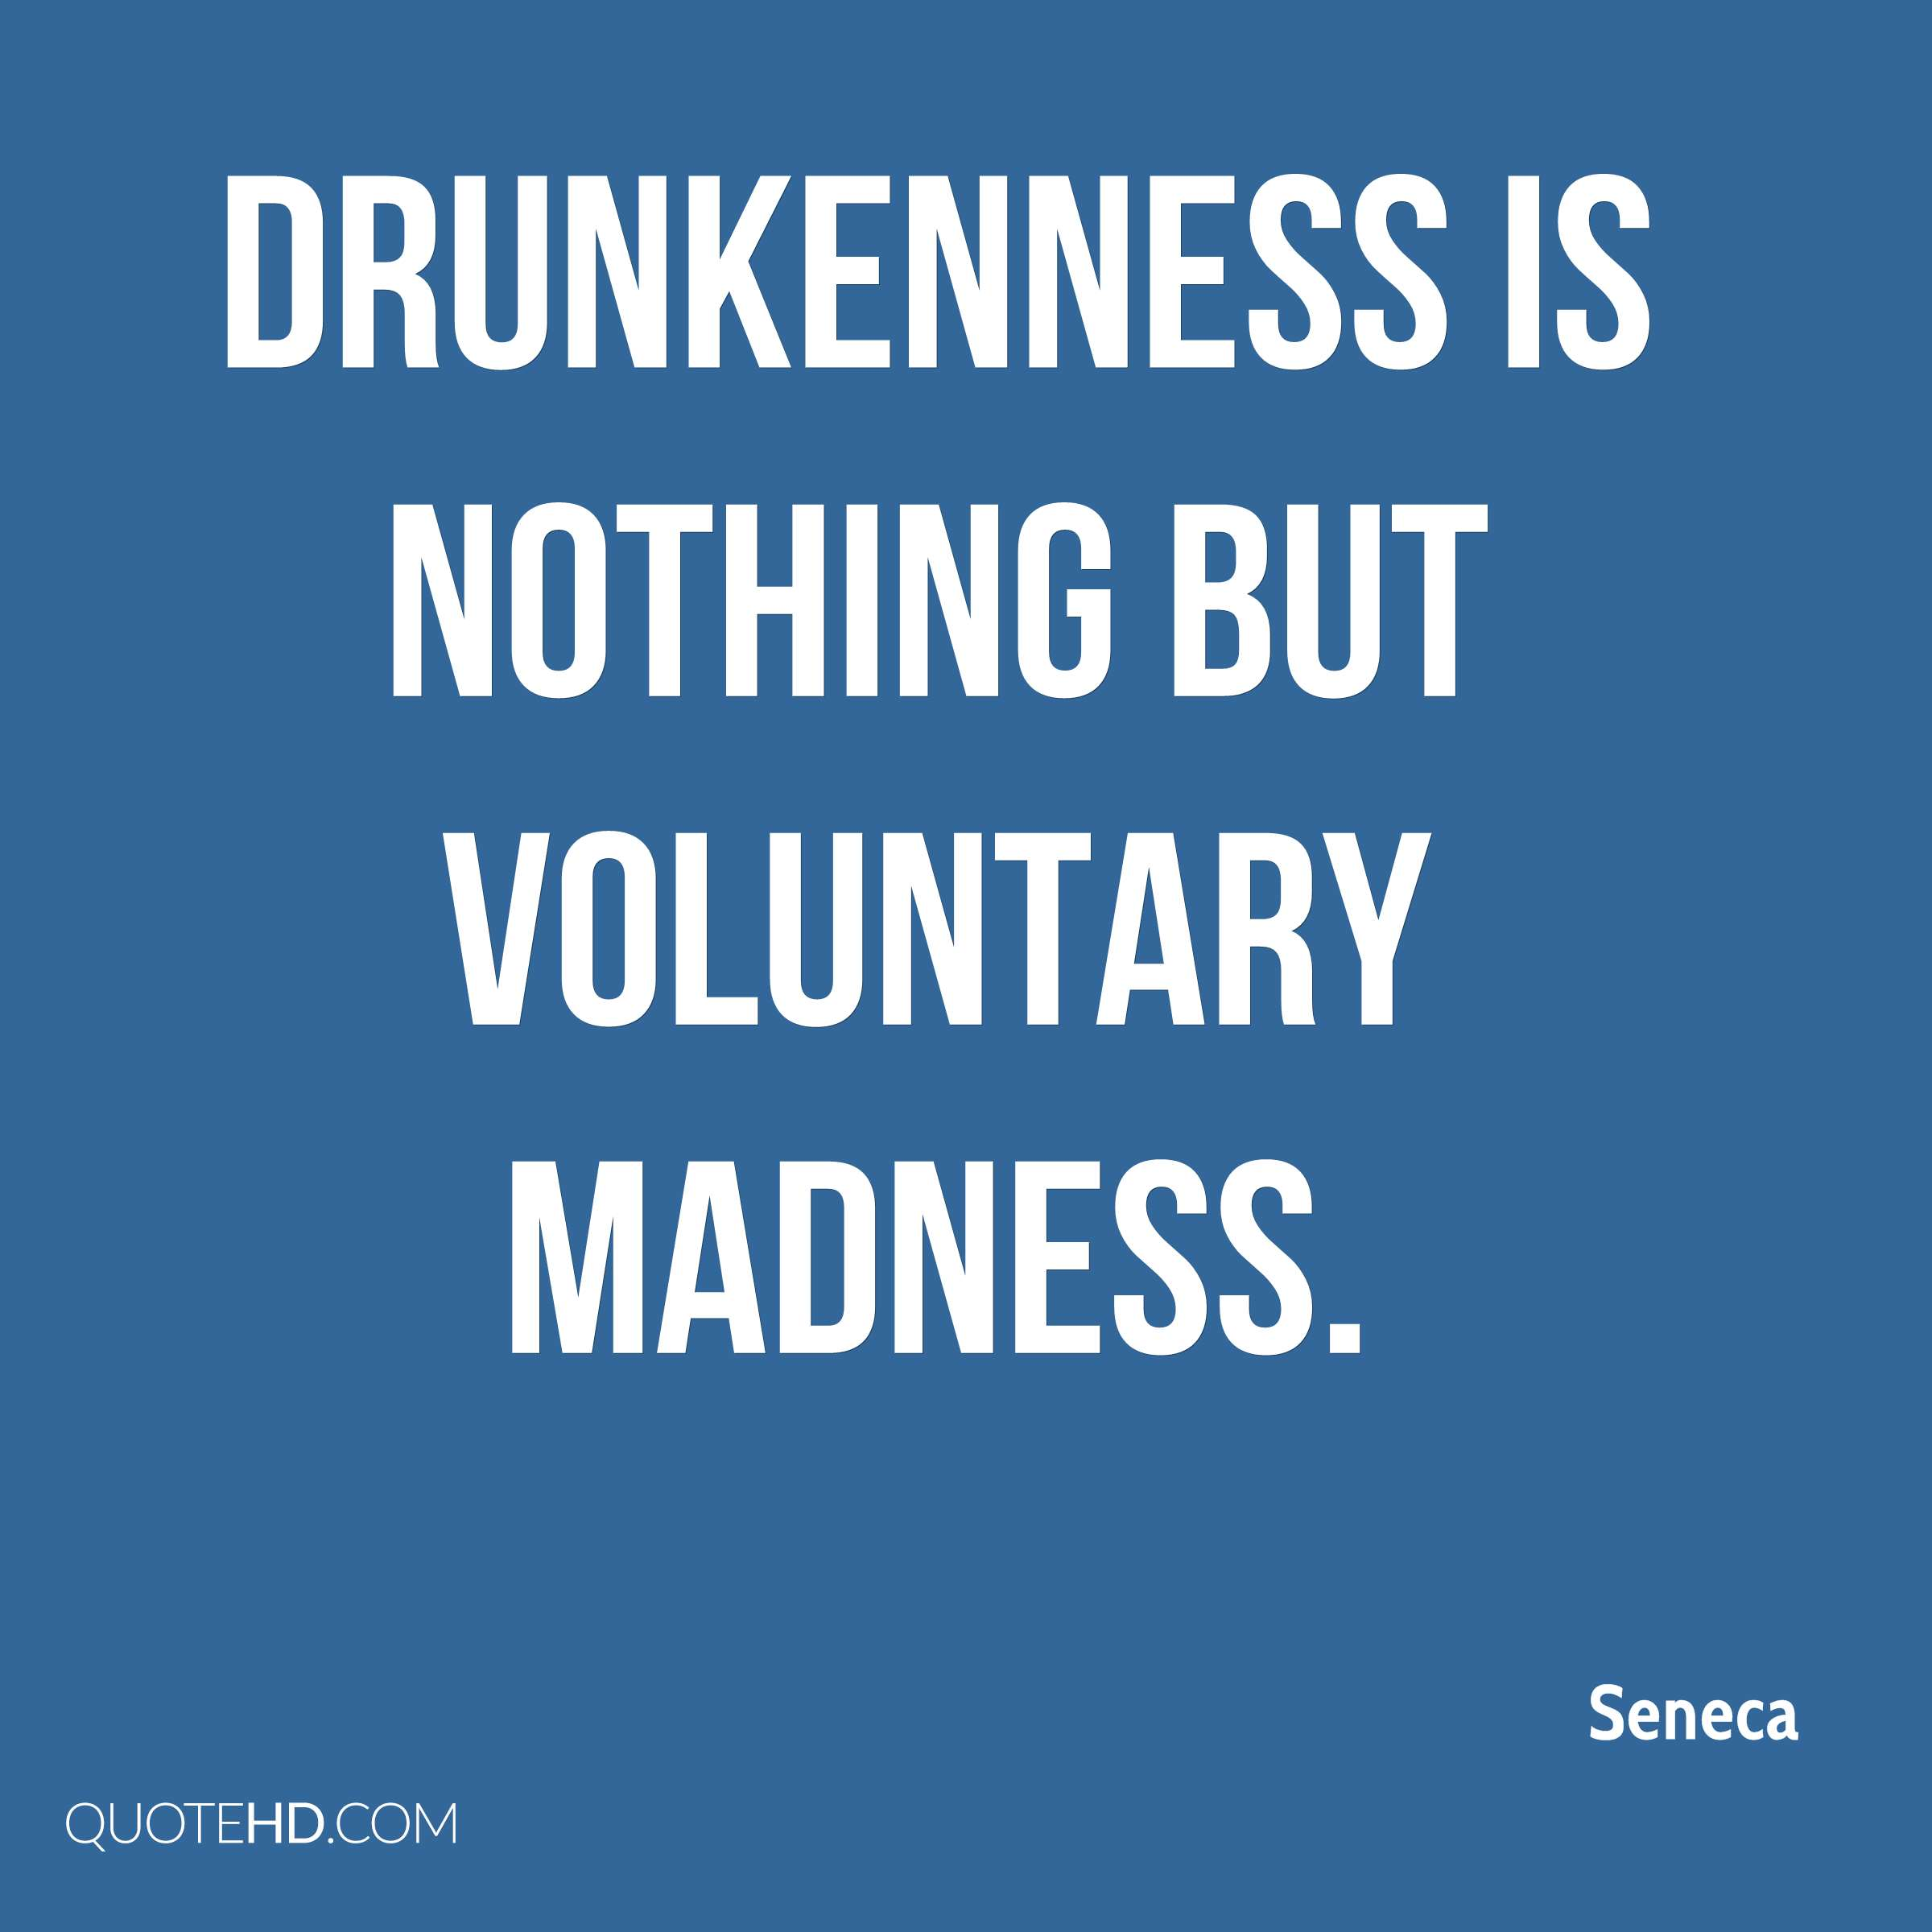 Drunkenness is nothing but voluntary madness.